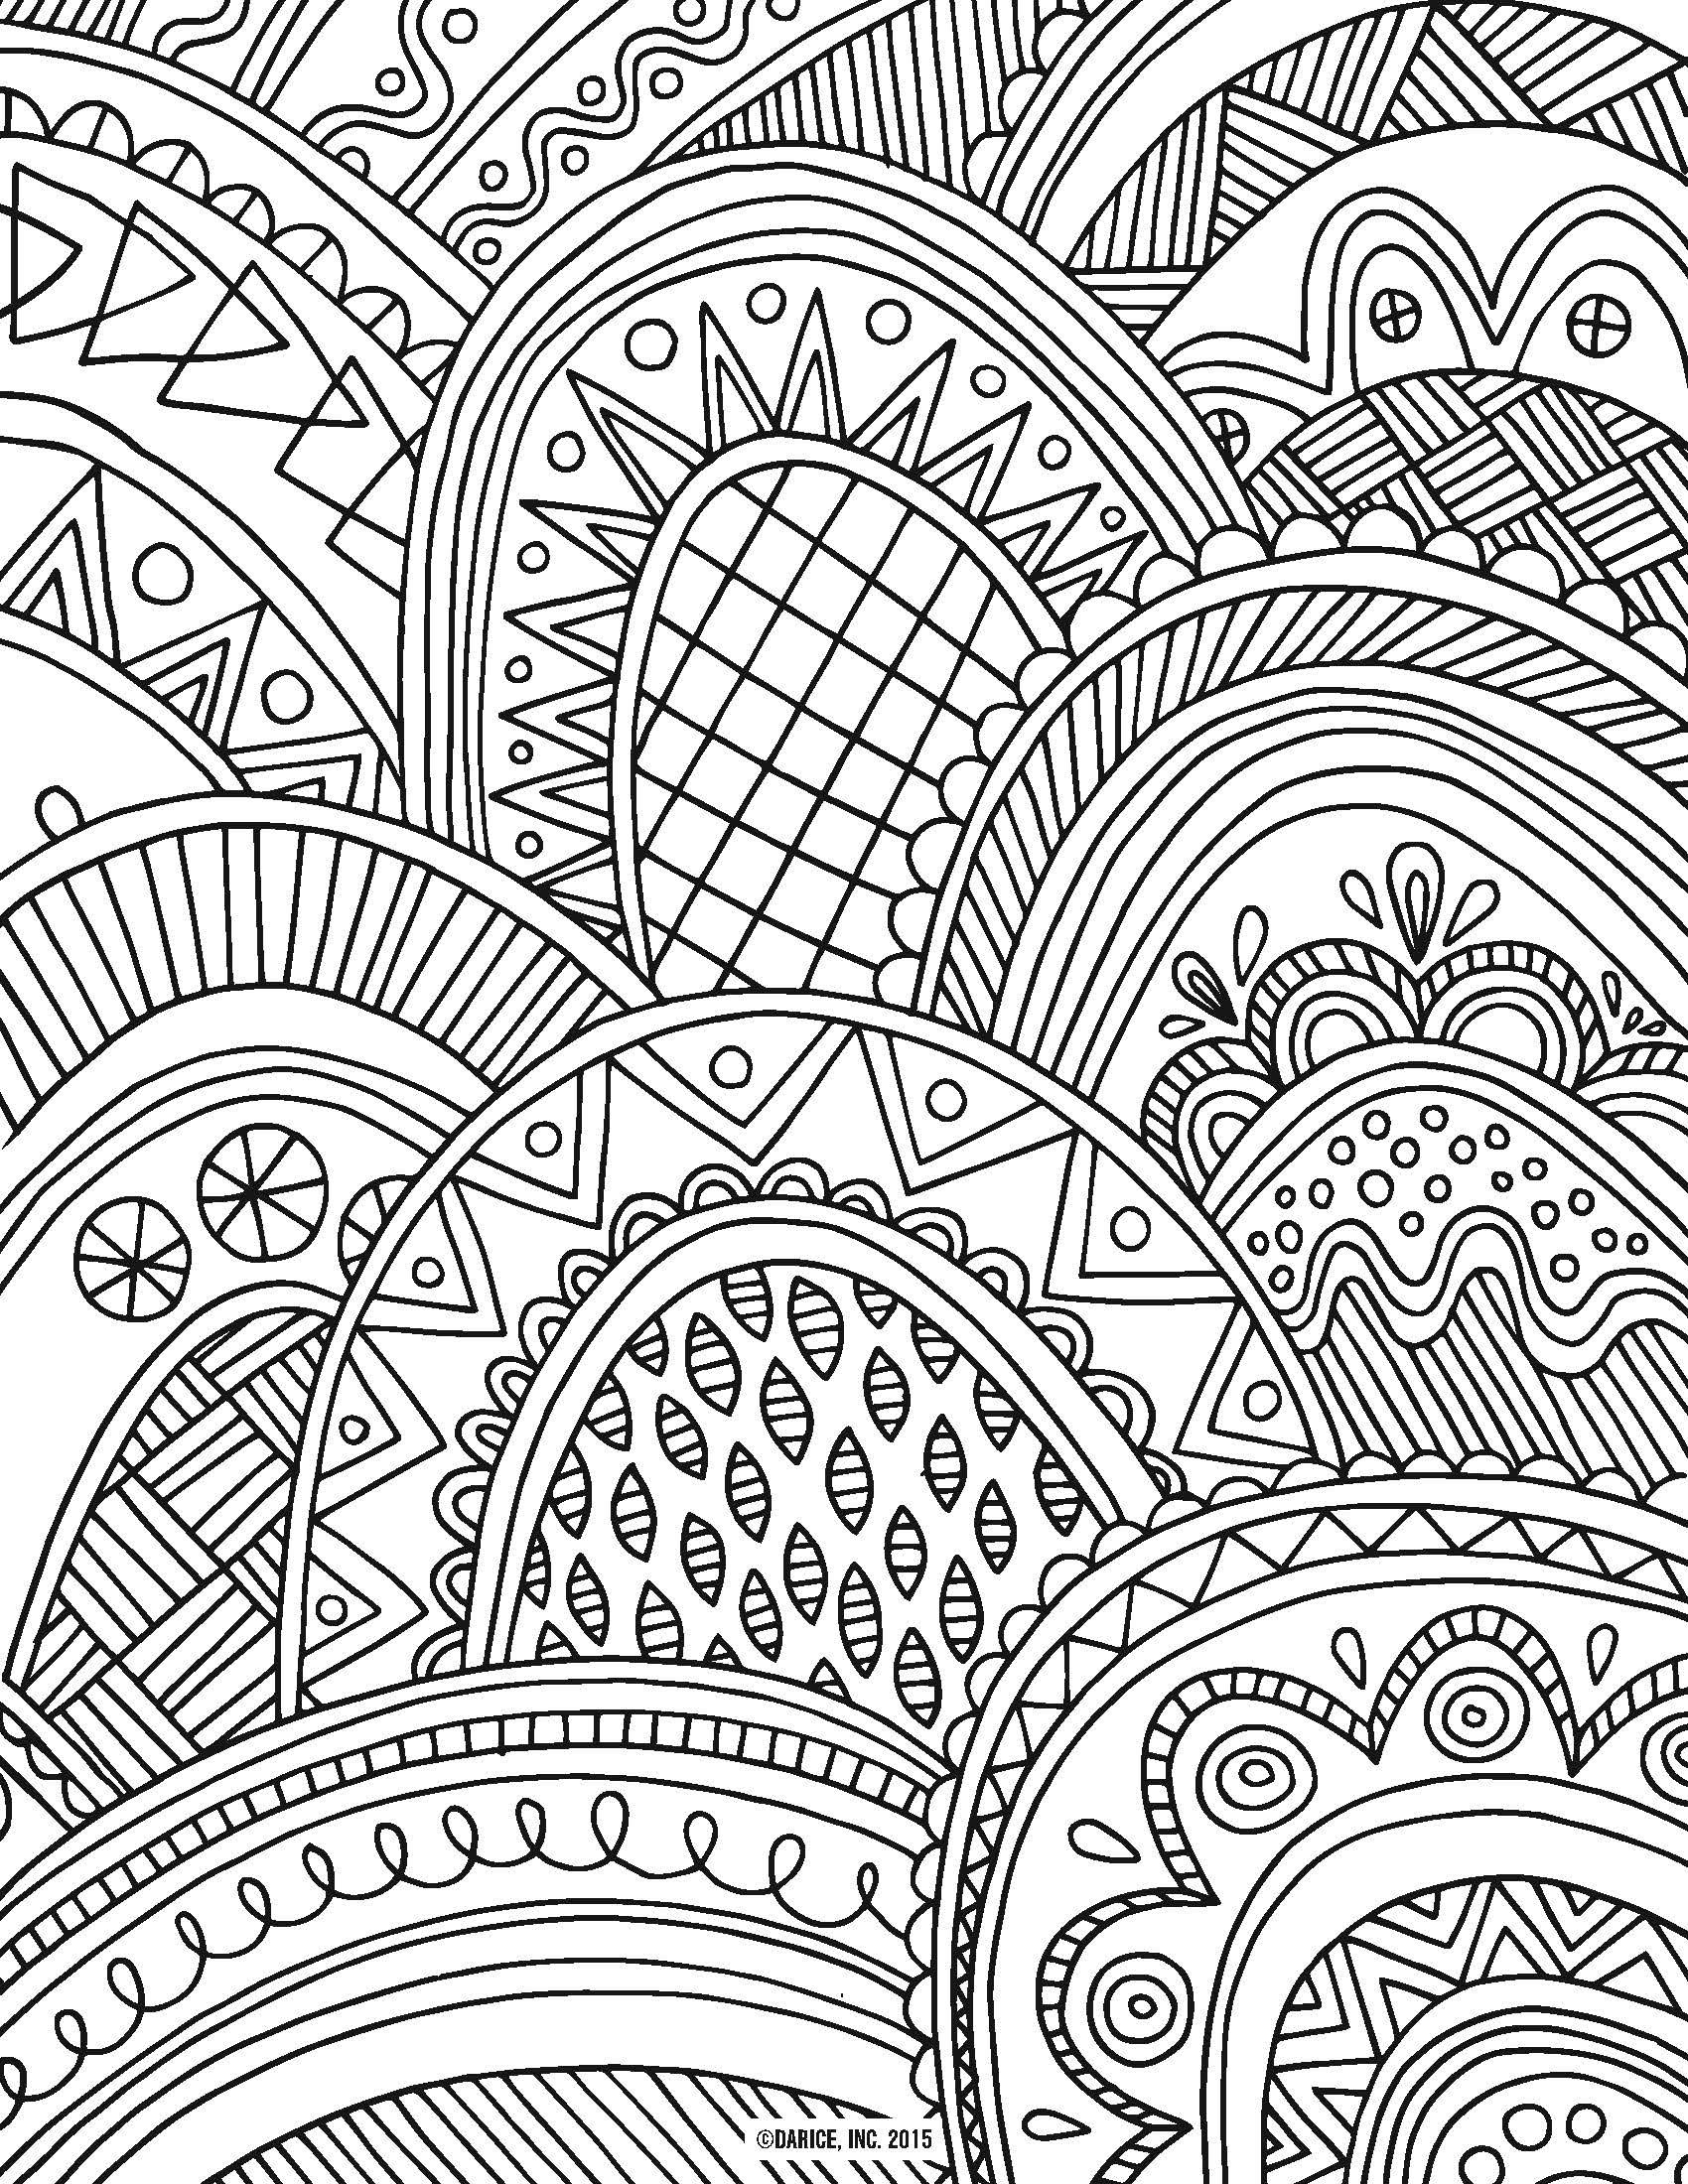 Try out the adult coloring book trend for yourself with our 9 free